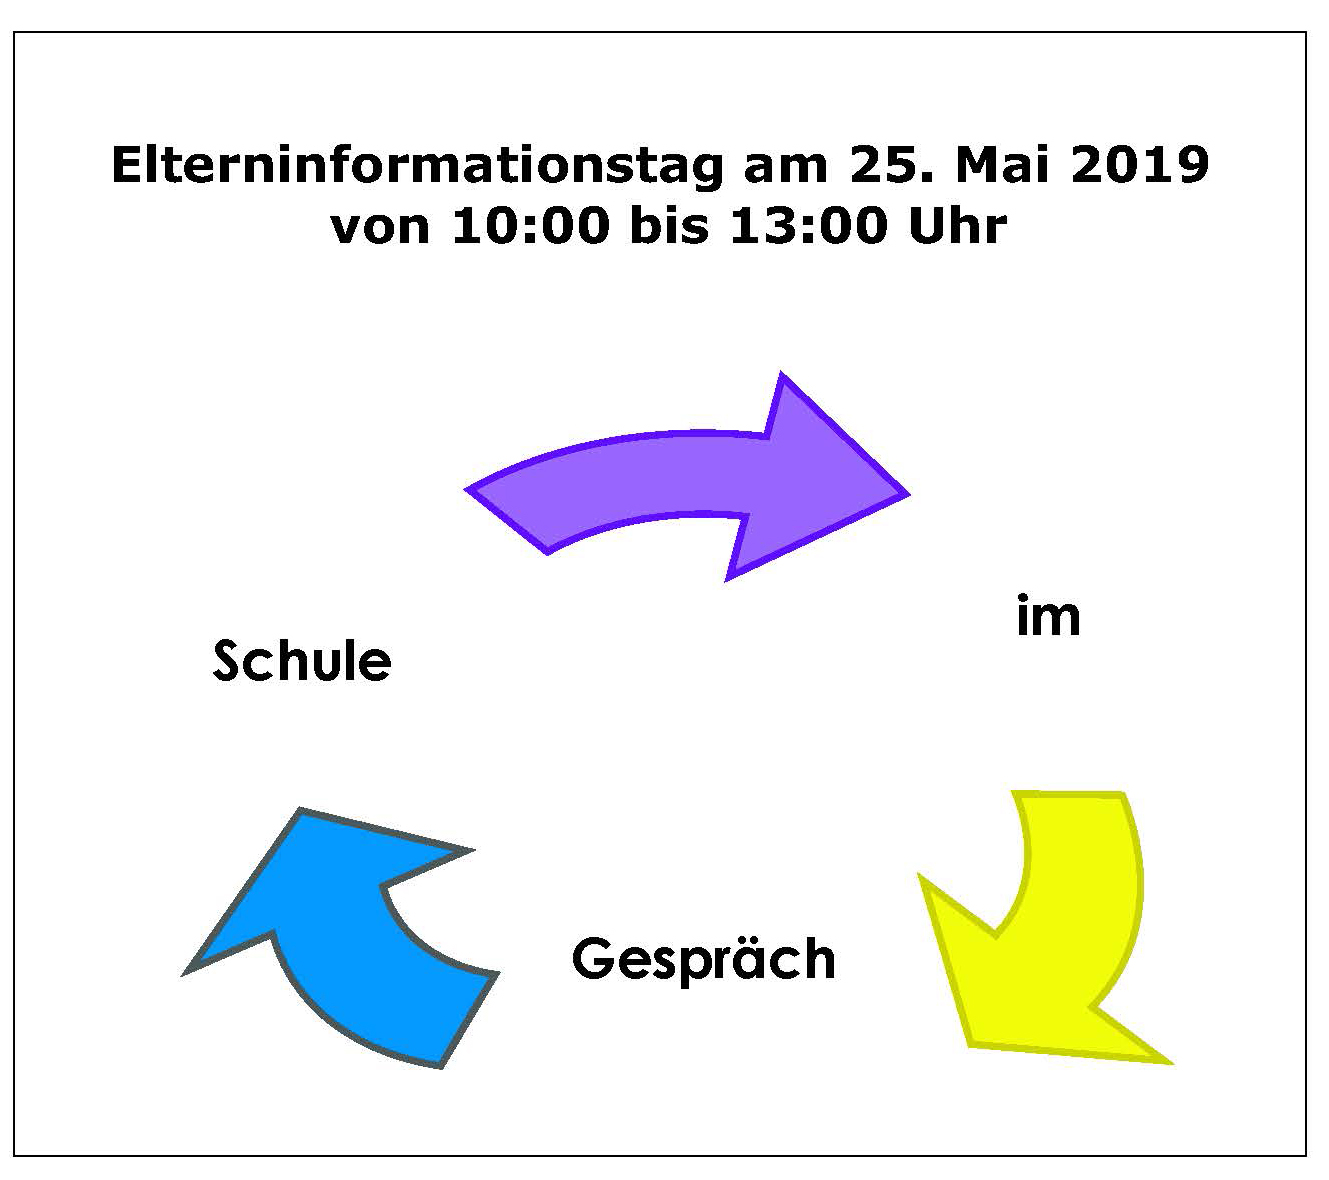 2019 Elterninformationstag